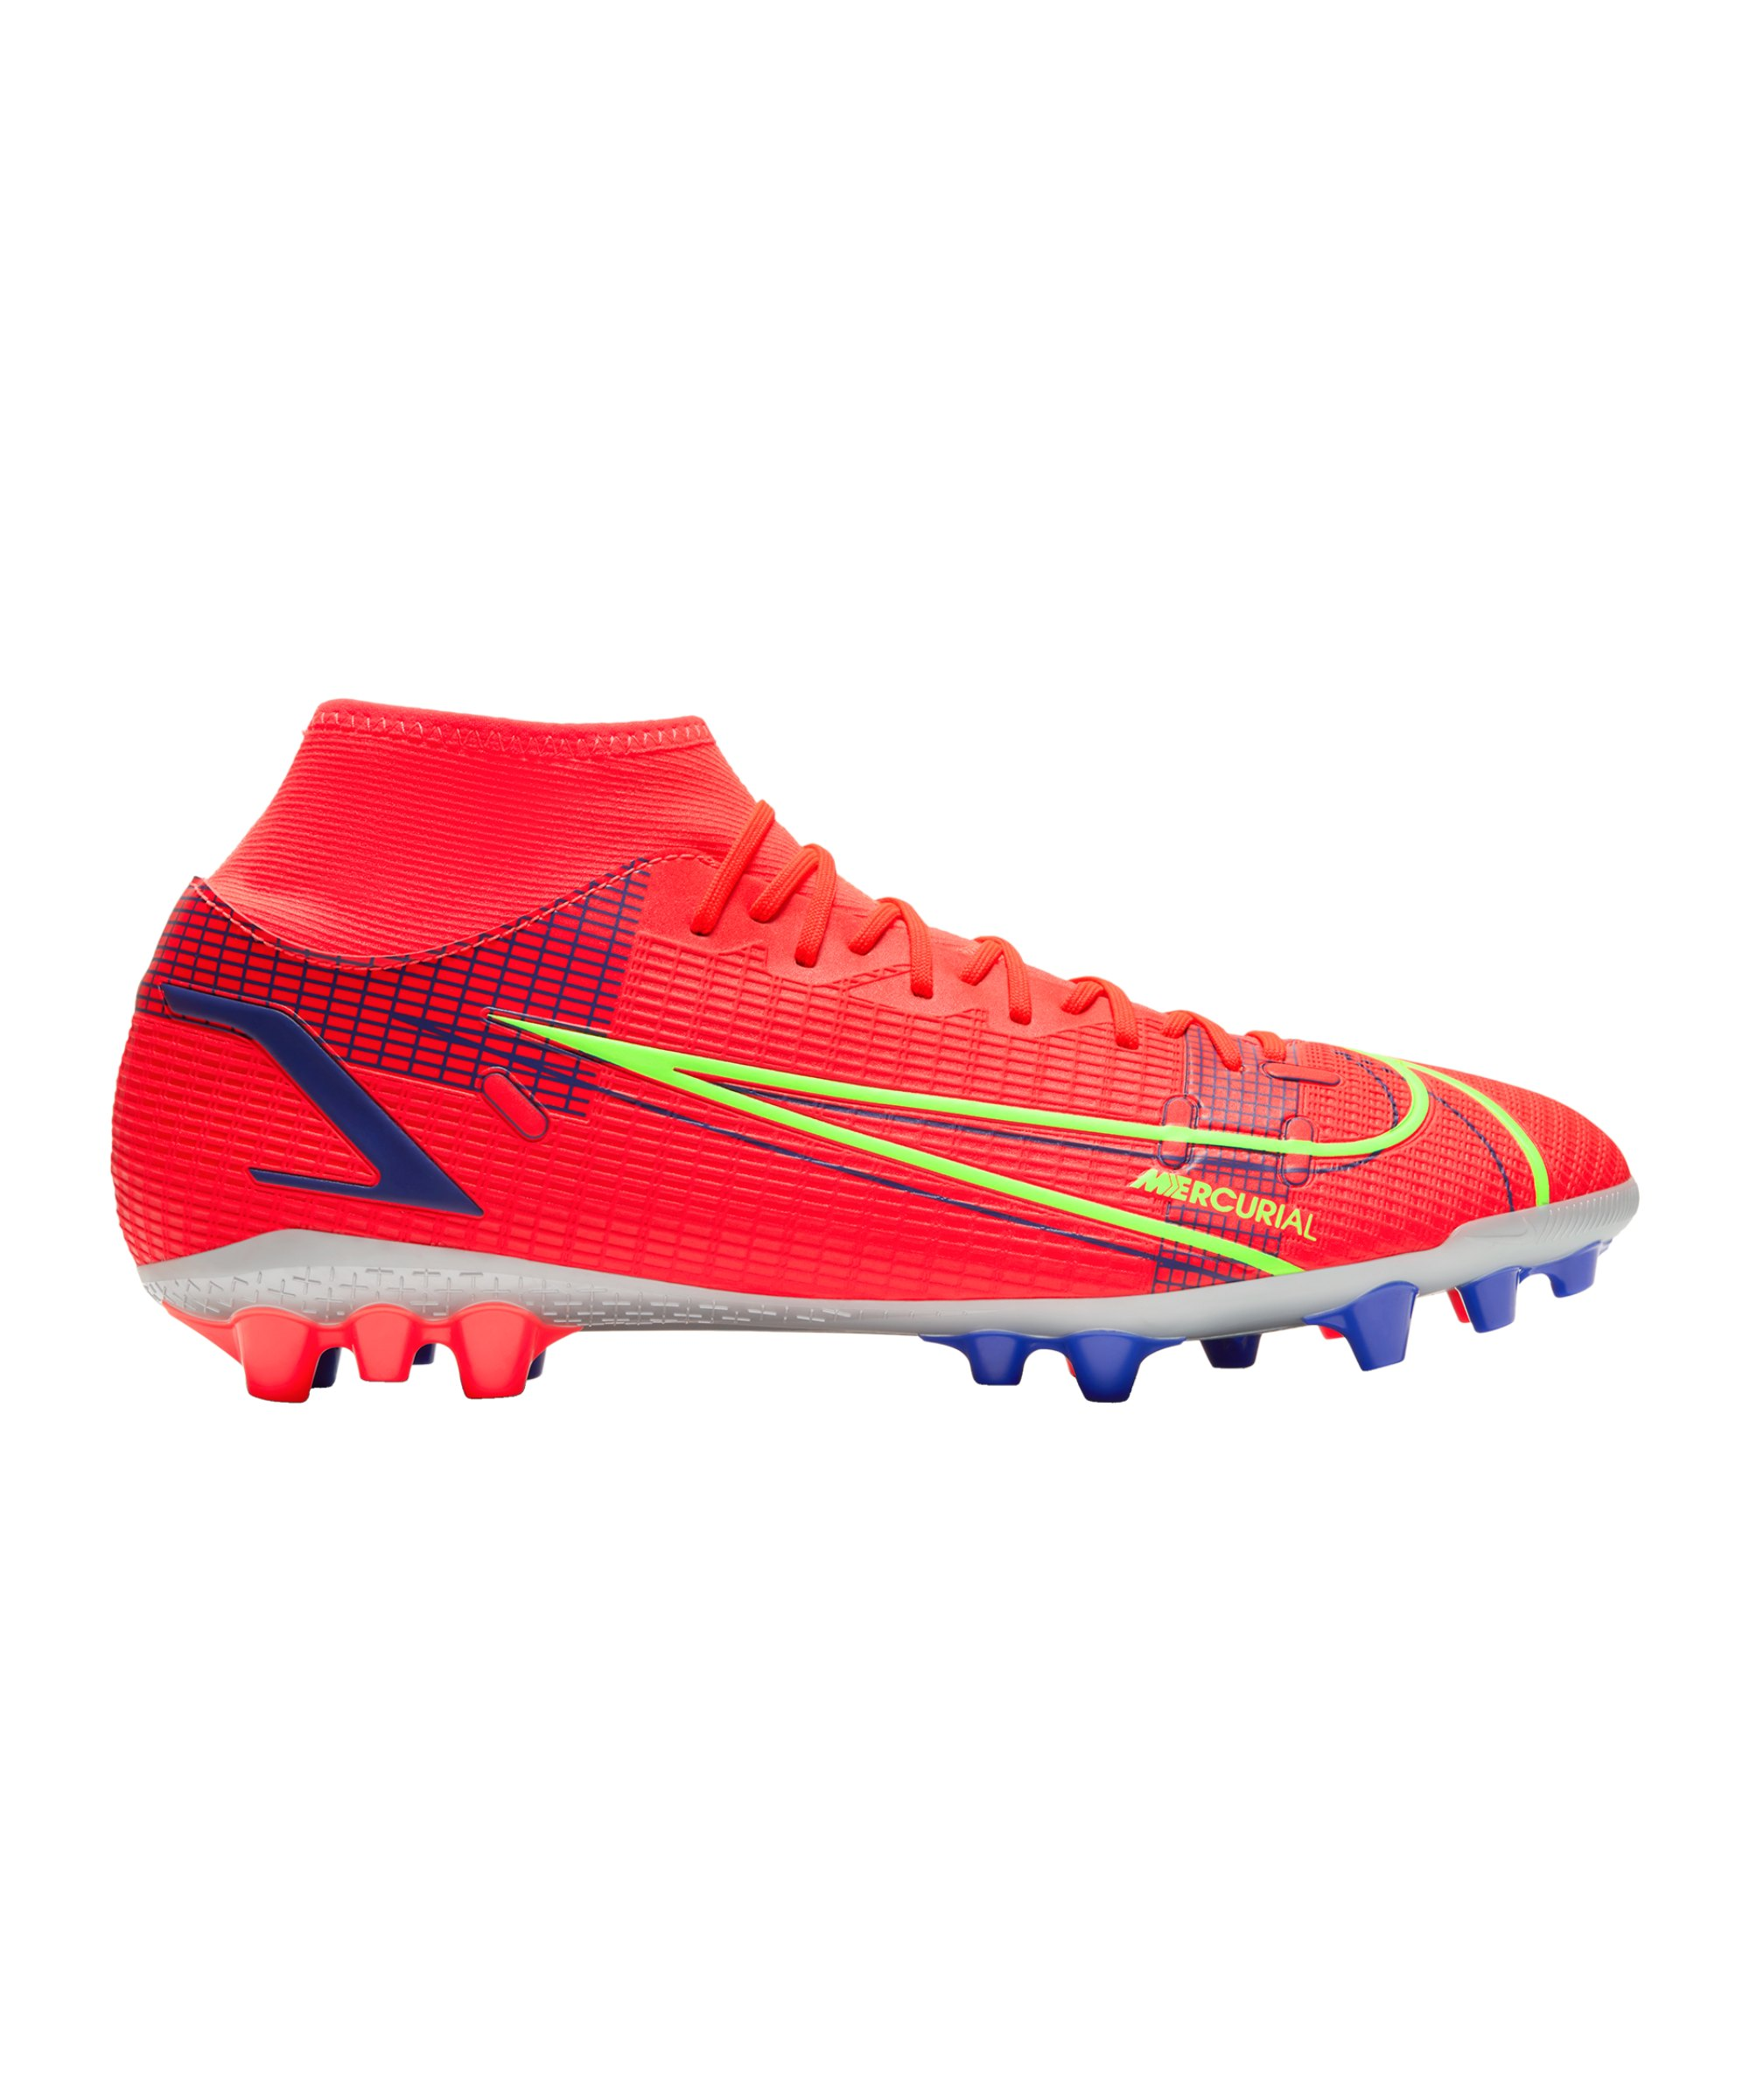 Nike Mercurial Superfly VIII Spectrum Academy AG Rot F600 - rot